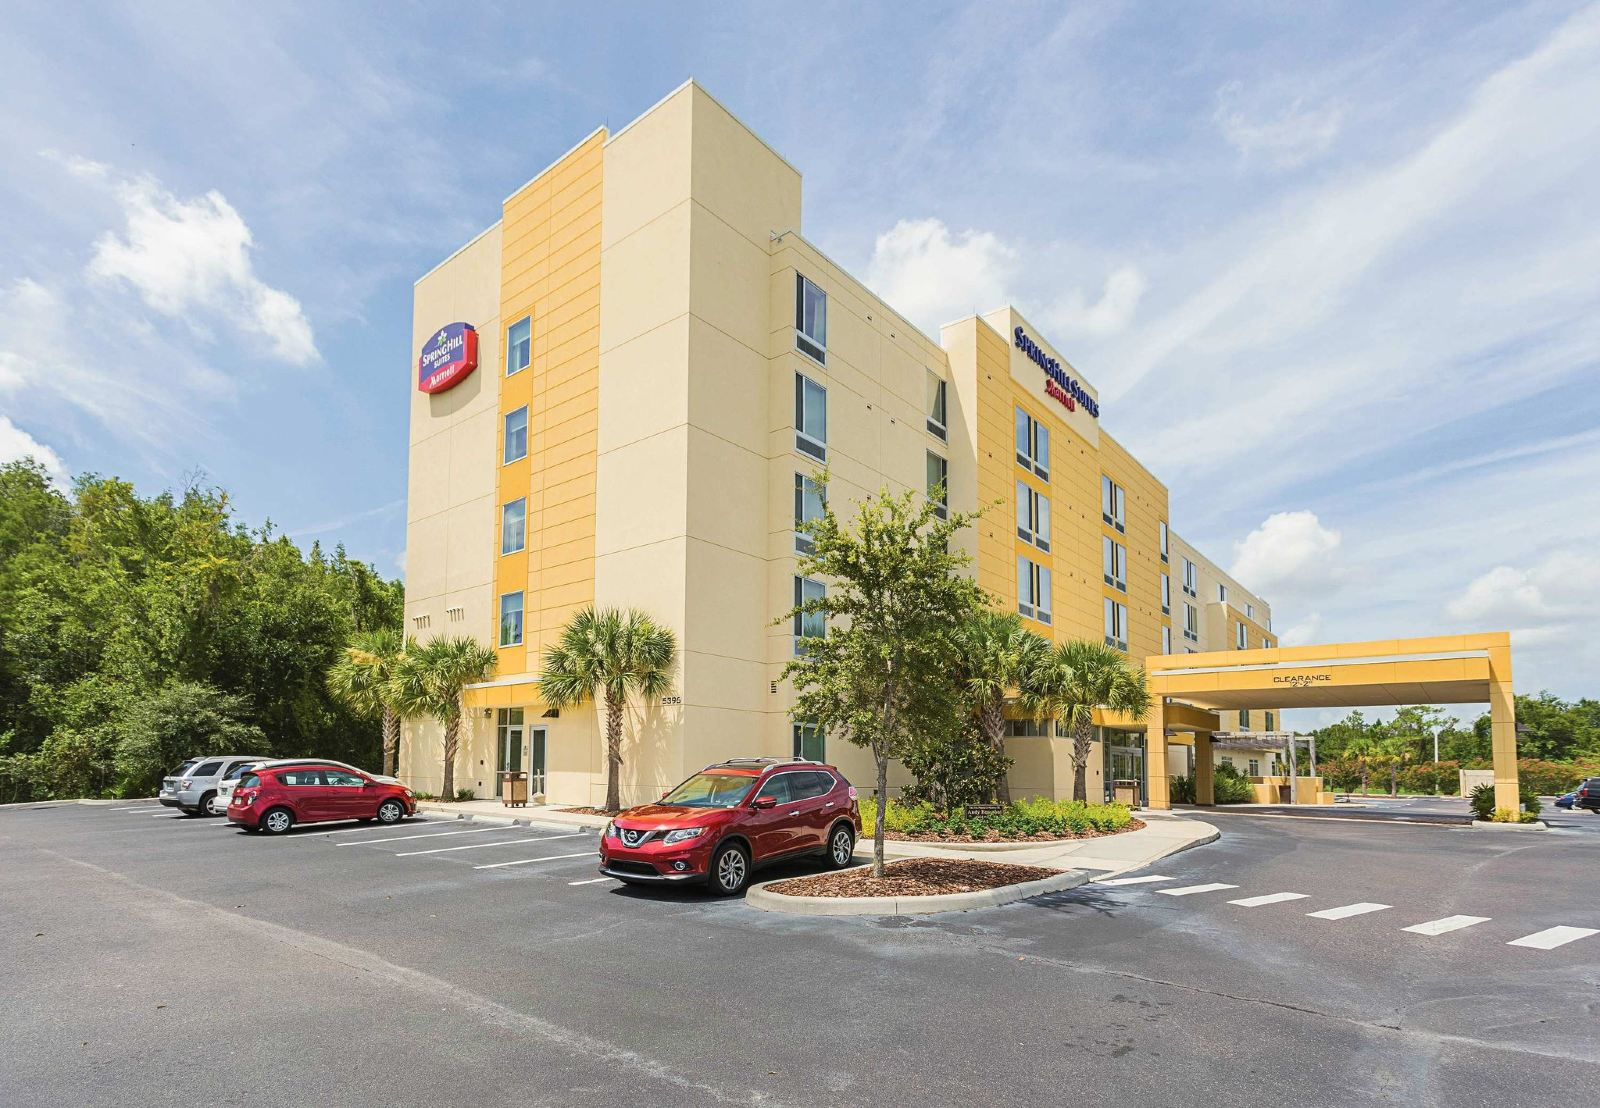 Springhill Suites Tampa Northi 75 Tampa Palms Hotels In Tampa